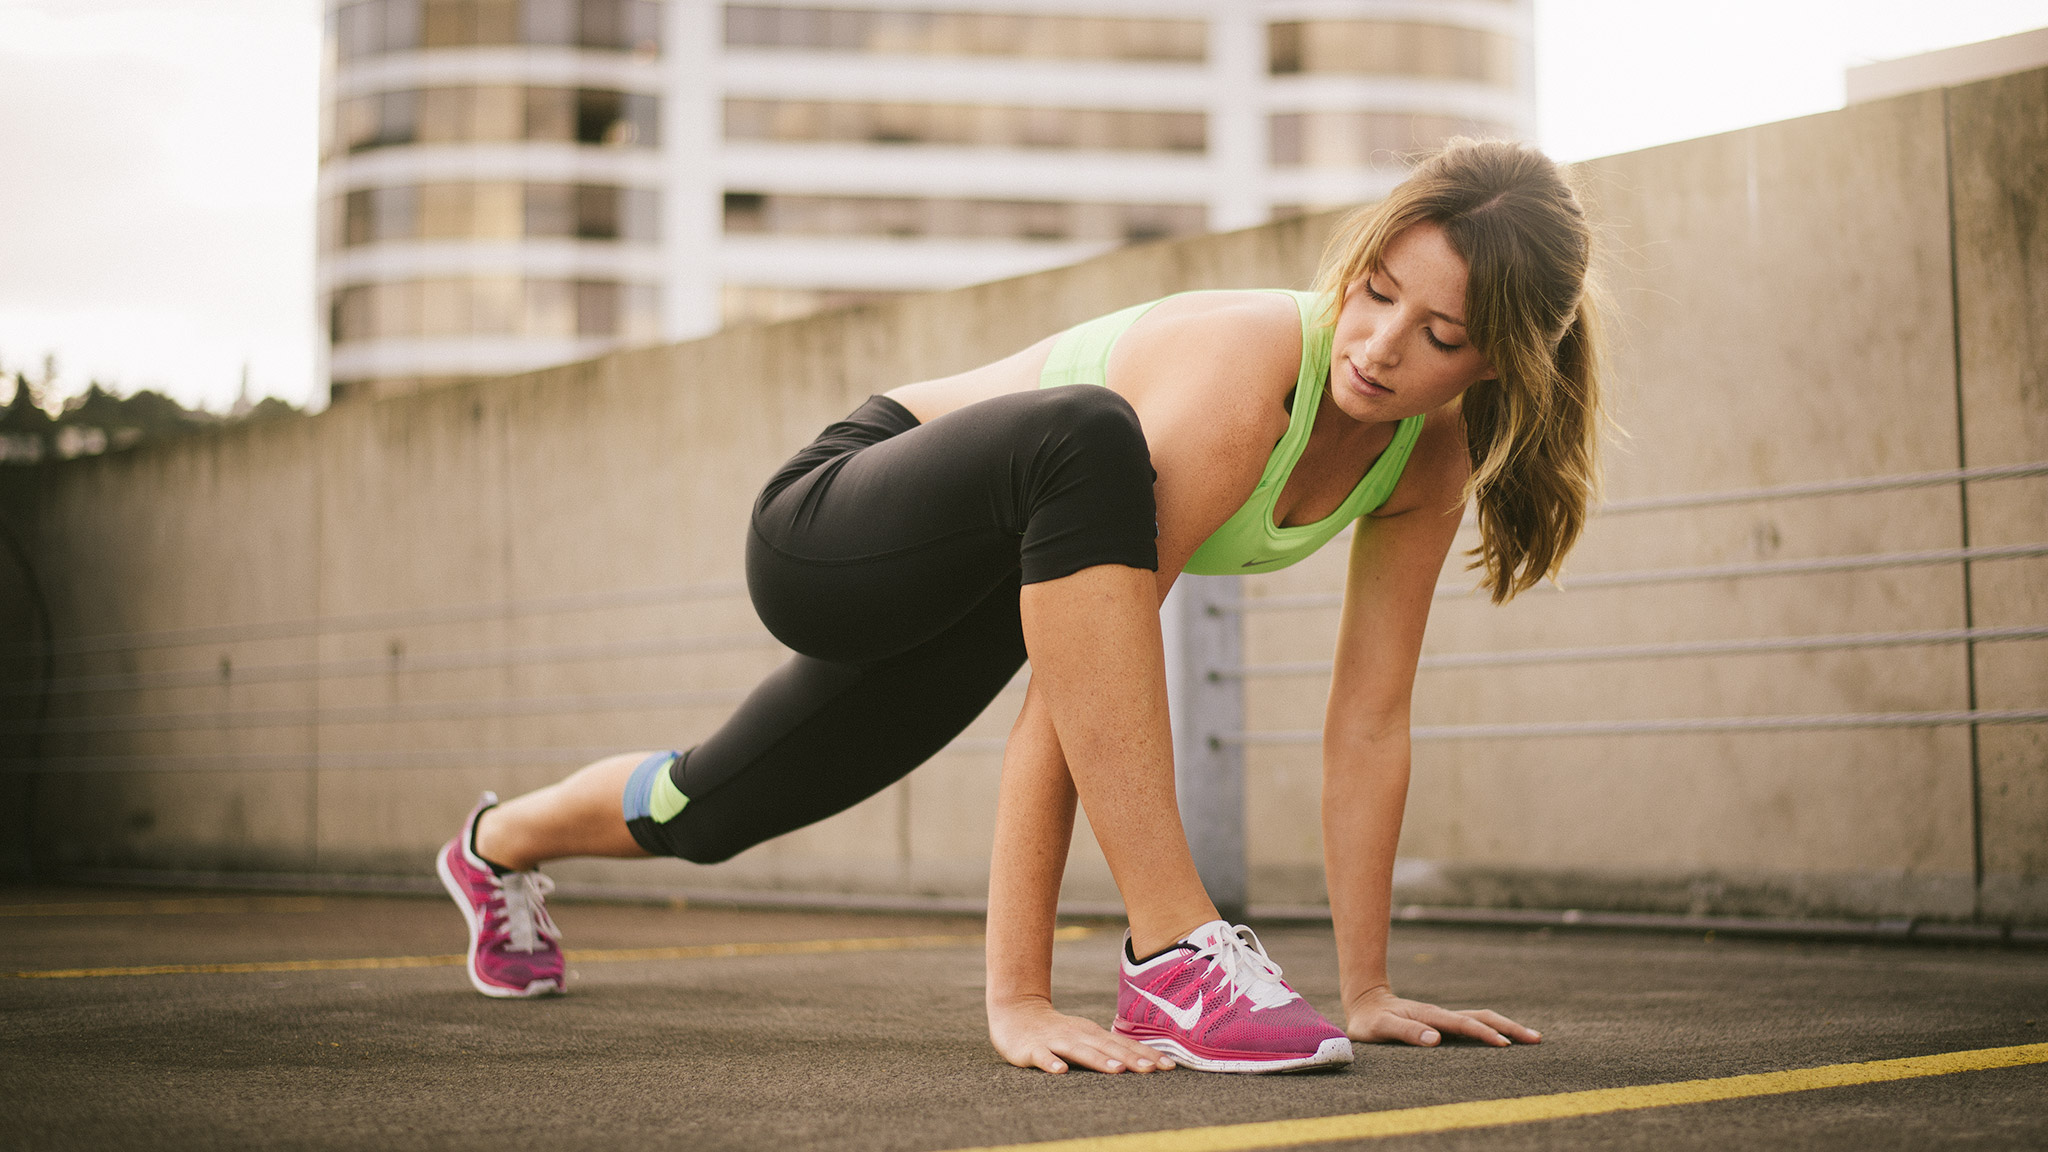 Woman Does Lunge Stretch | Zach Ancell Photography